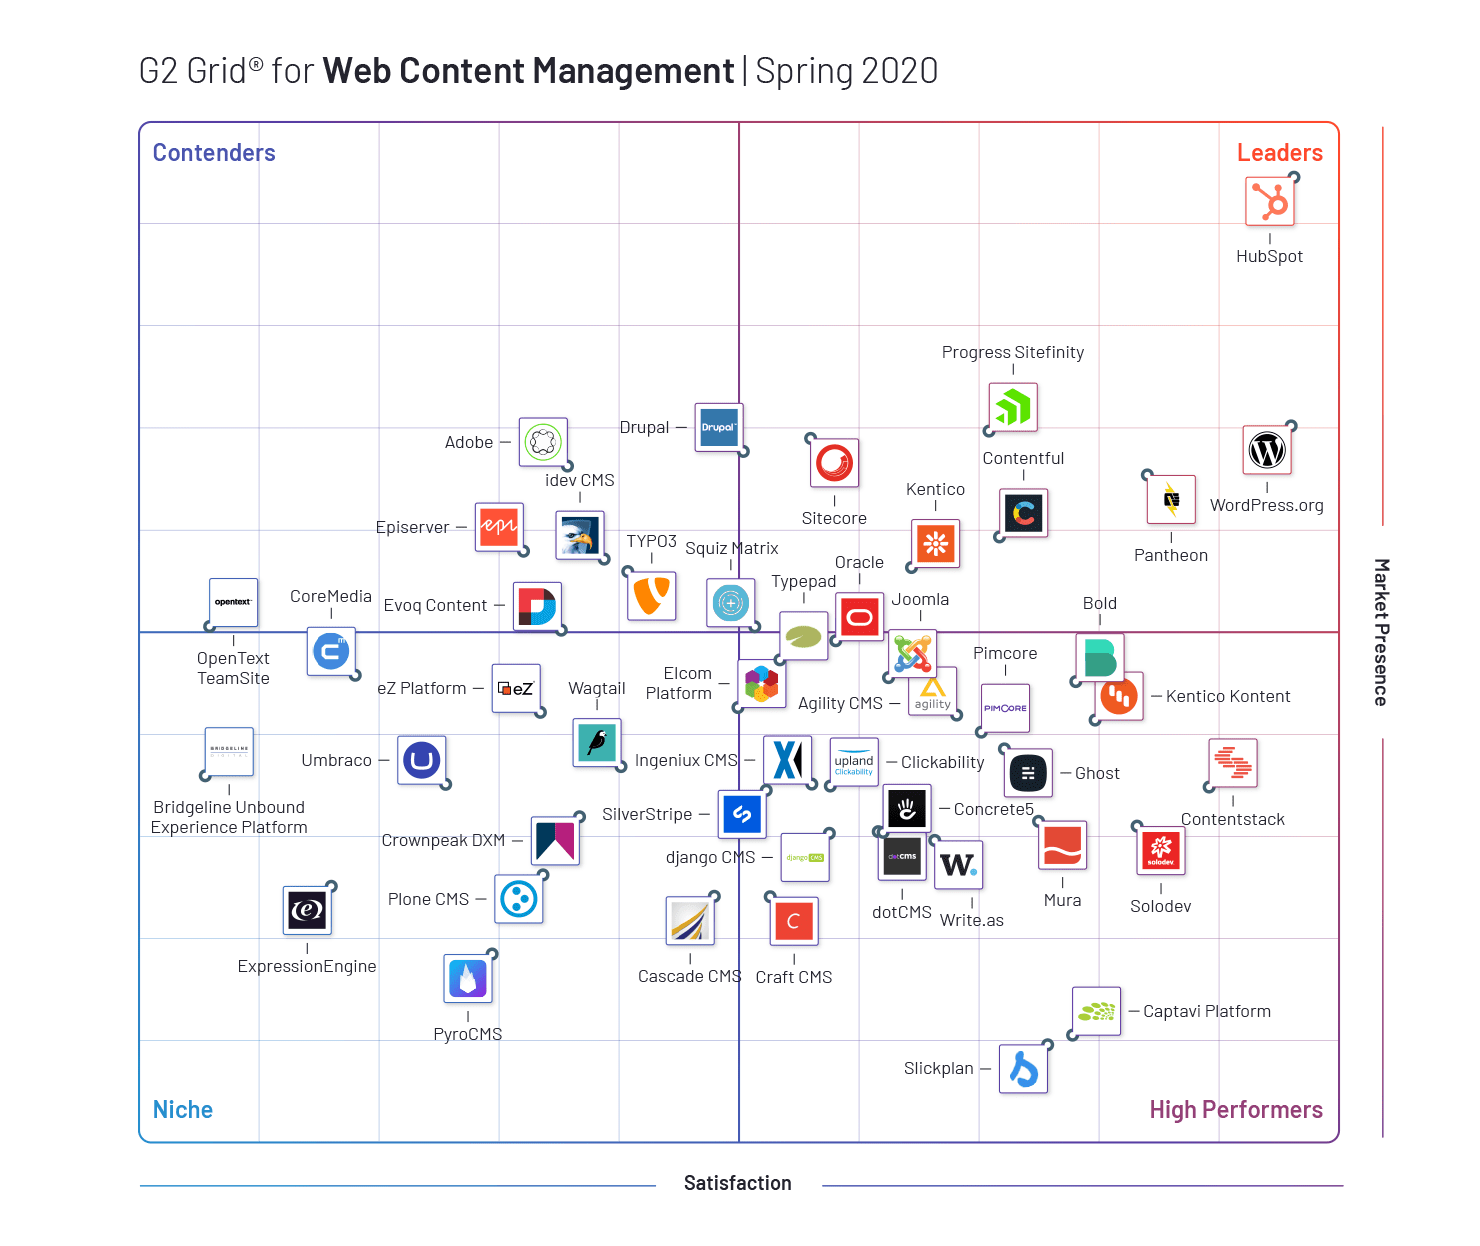 Spring 2020 G2 Crowd Web Content Management Grid